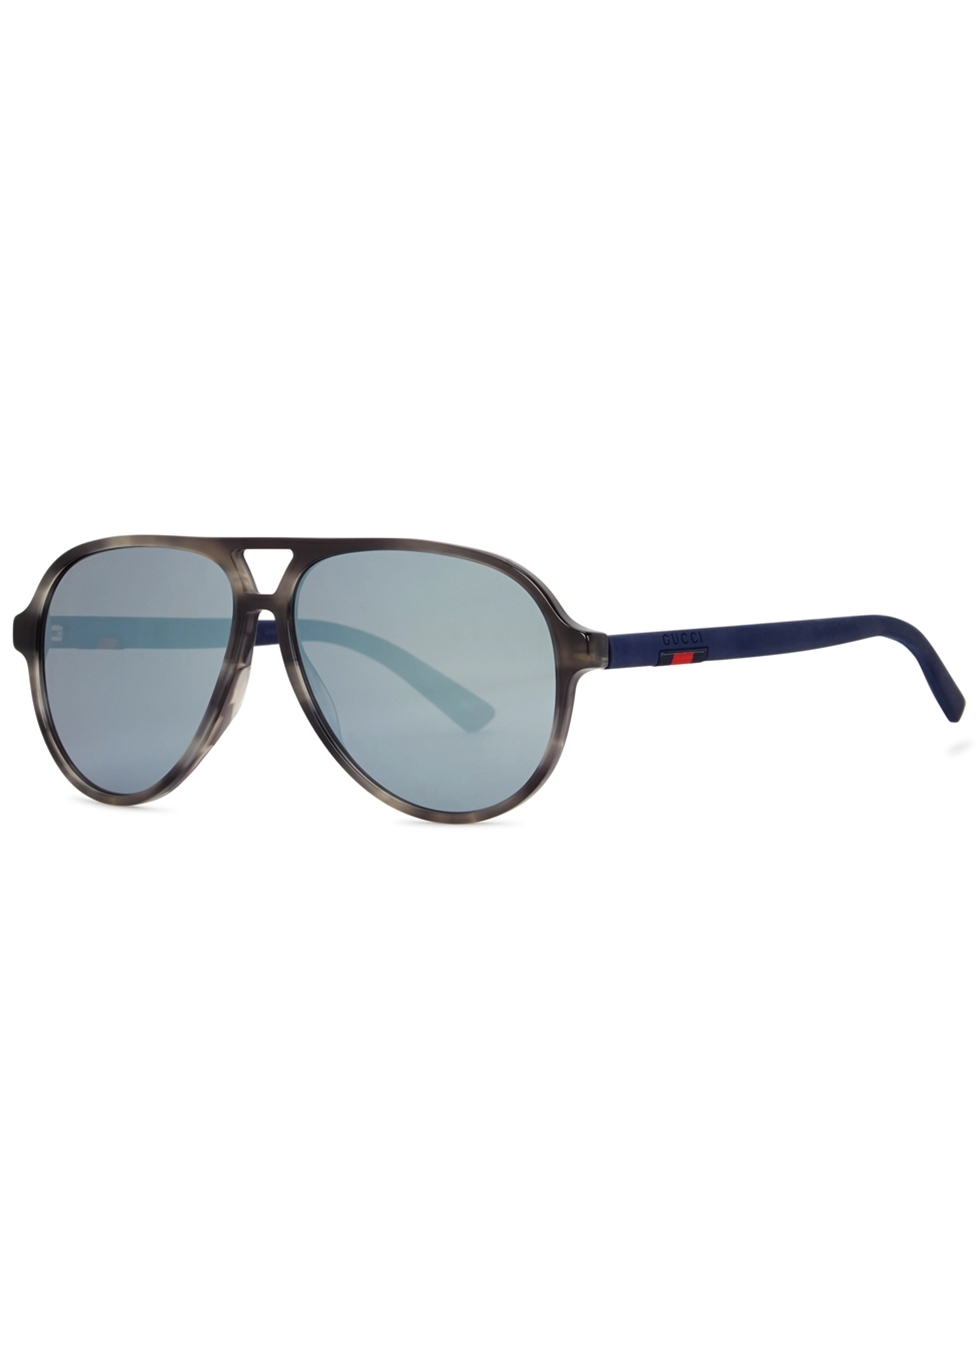 3a9fafba7df Gucci Sunglasses - Womens - Harvey Nichols